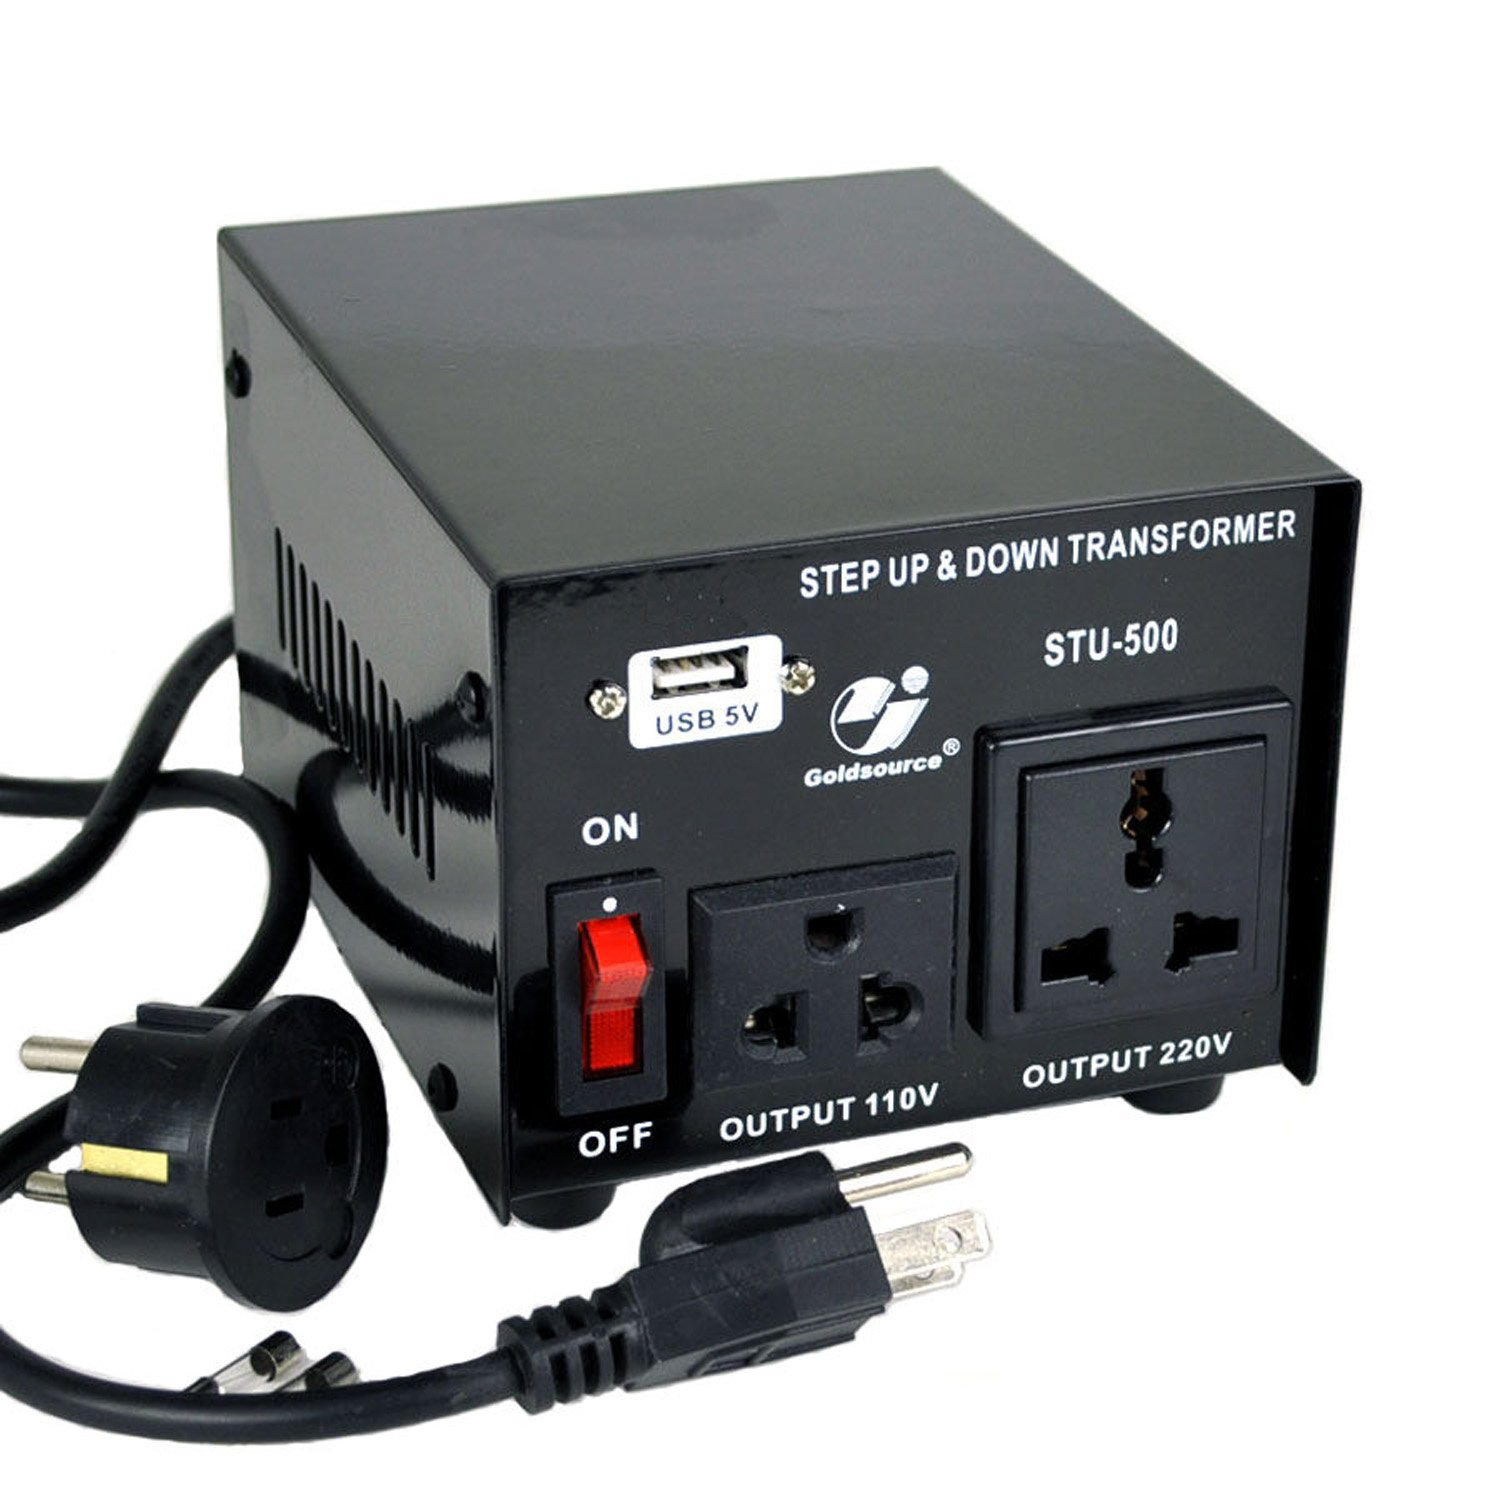 Goldsource Stu 500 Voltage Converter Ac 110v 220v Amplifier Transformer Wiring Moreover Electronic Dog Repellent Circuit 500w Step Up And Down With 5v Usb Port Maximum Load Capacity